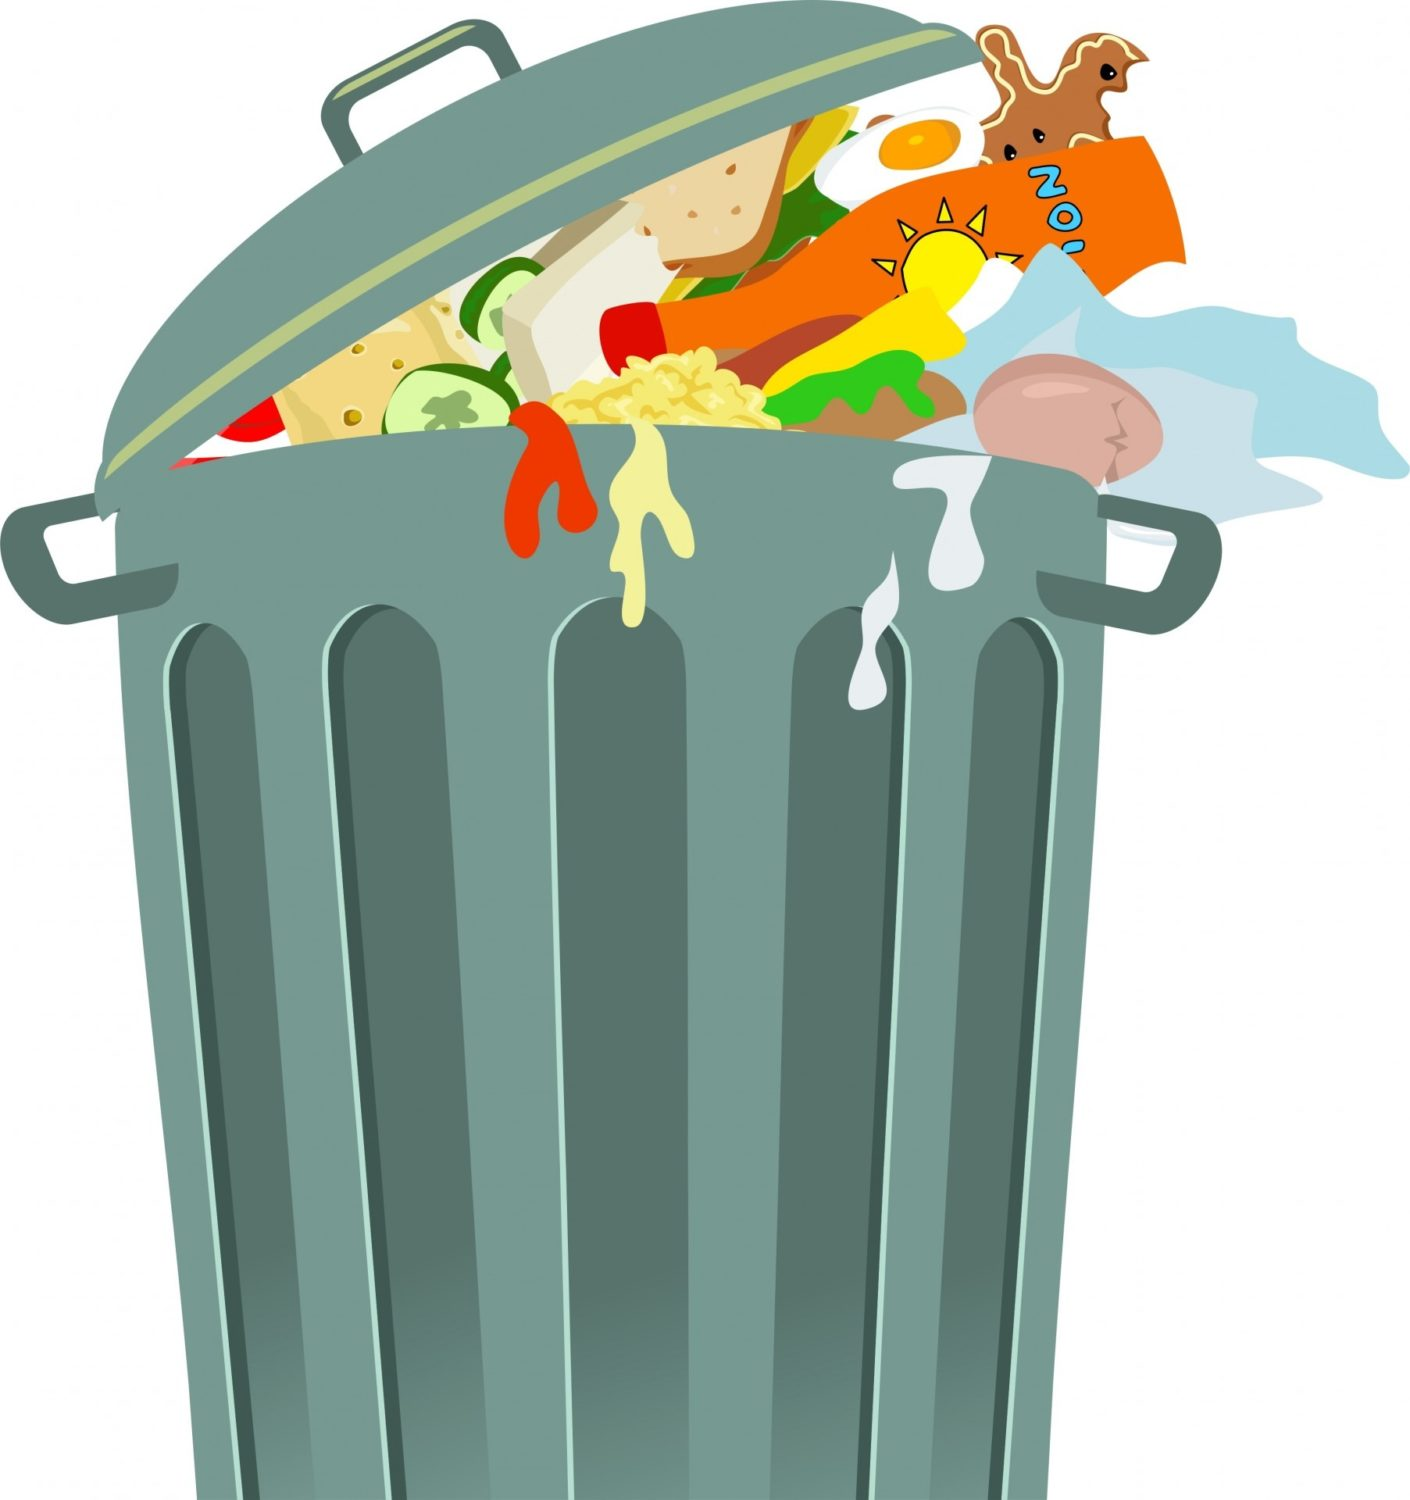 trash can clip art free stock photo public domain pictures within rh healthyjaime com garbage man clipart garbage man clipart